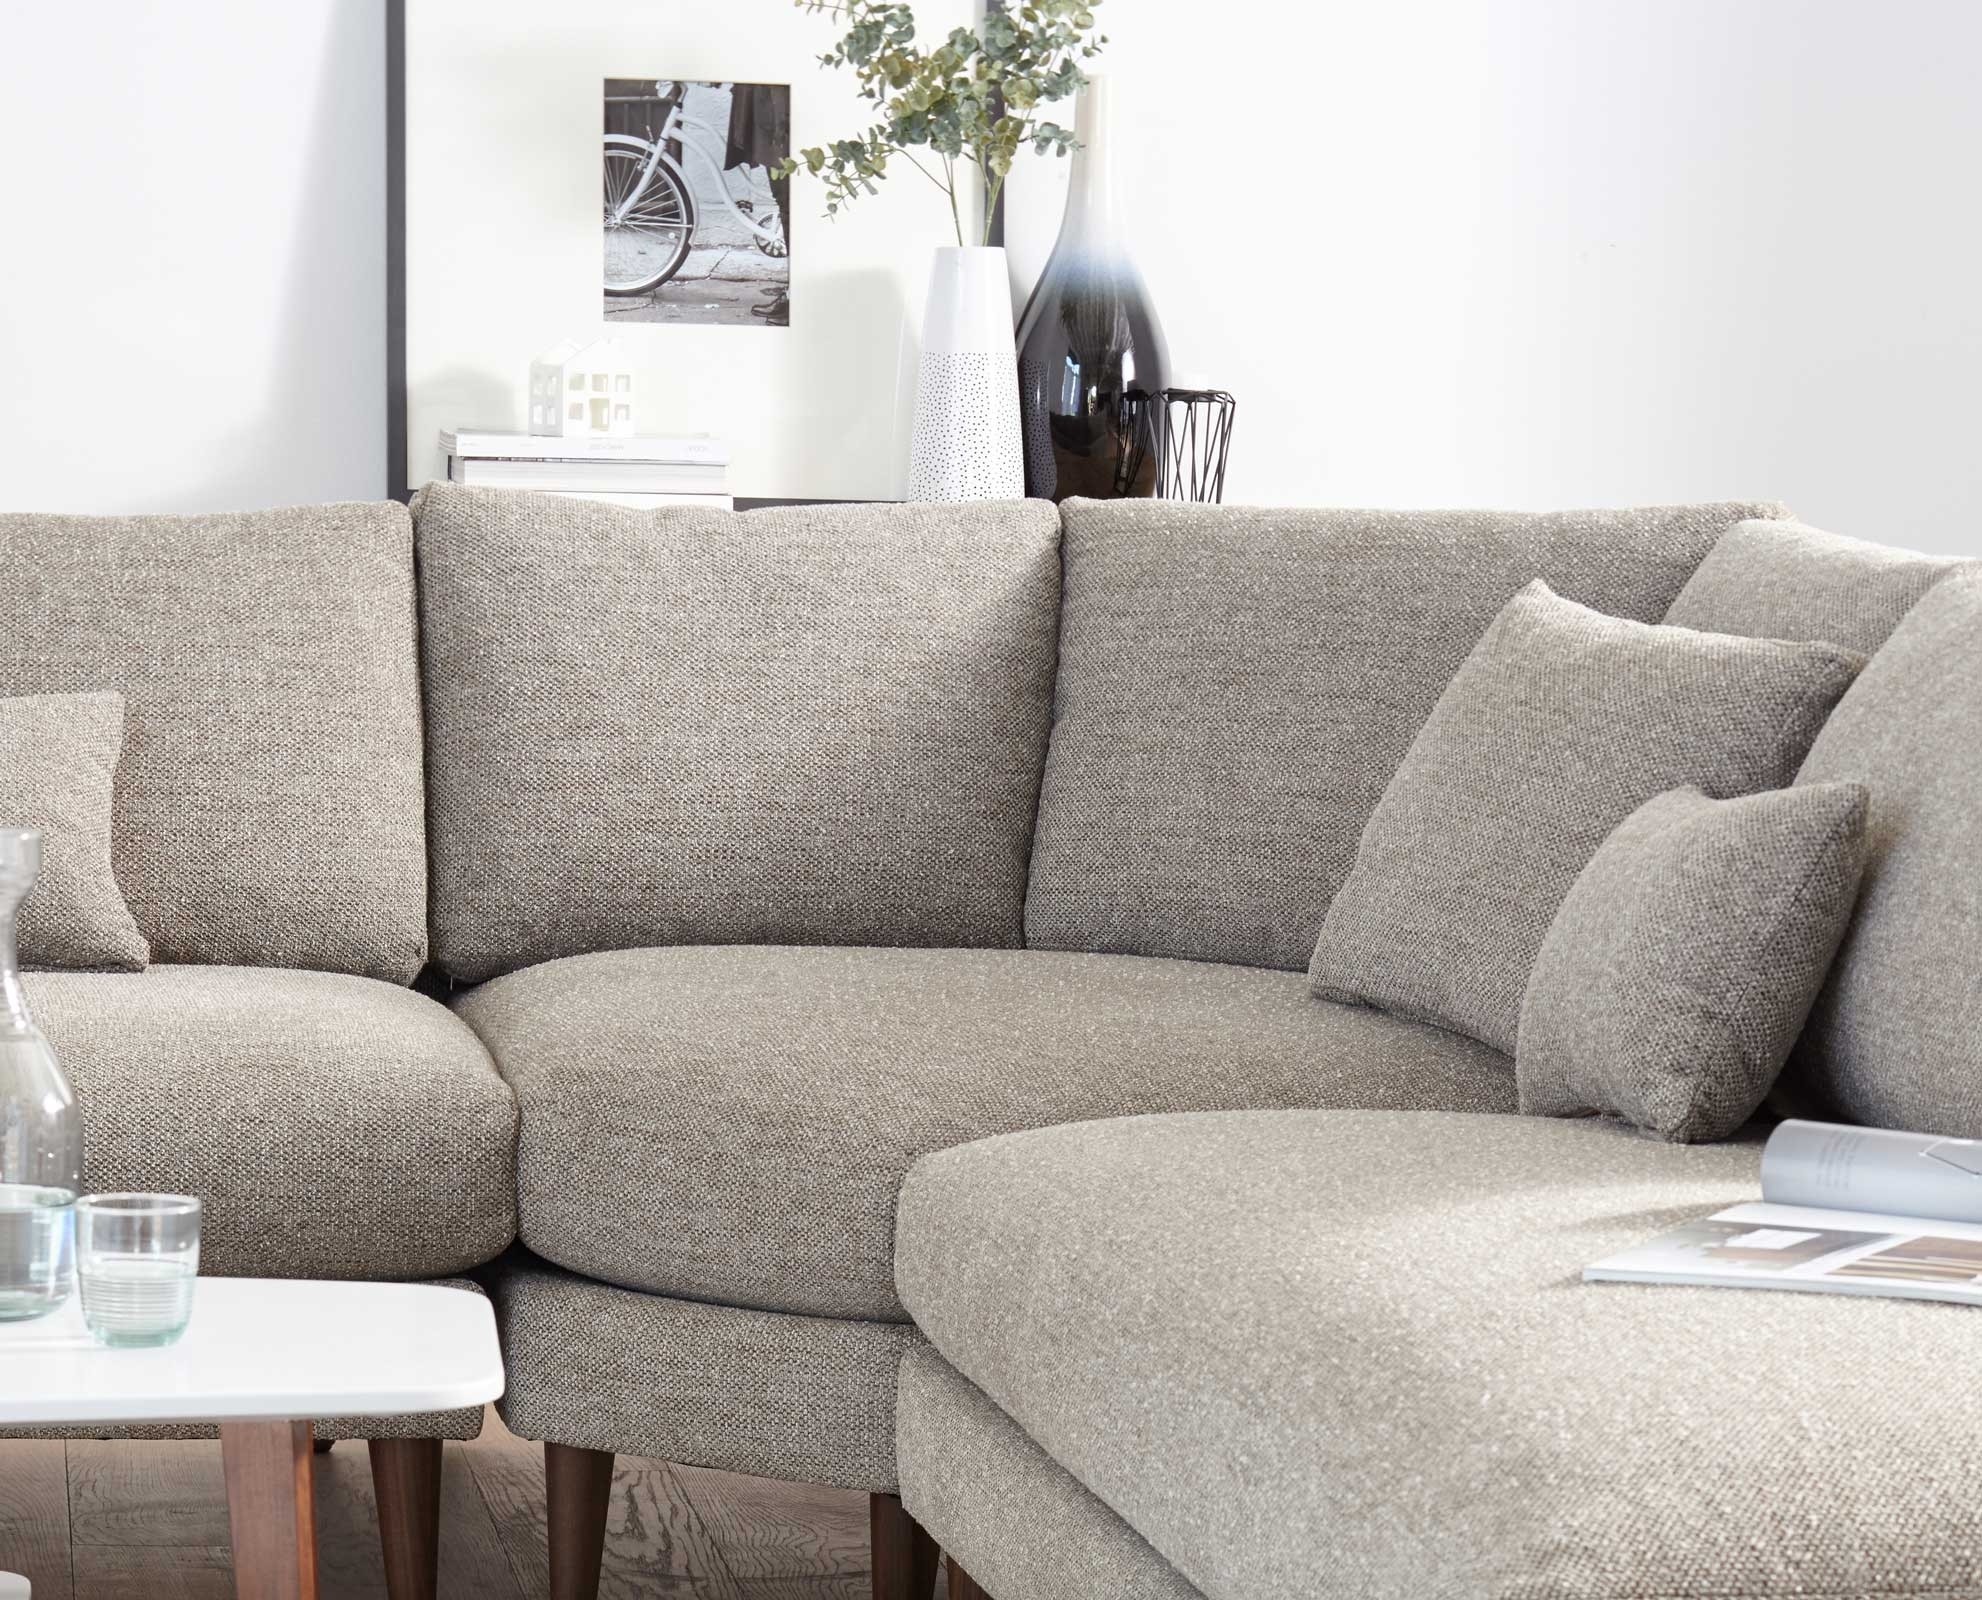 The Grand Hugo Sectional From Scandinavian Designs Is A Great Value Inside Grand Furniture Sectional Sofas (Image 8 of 10)